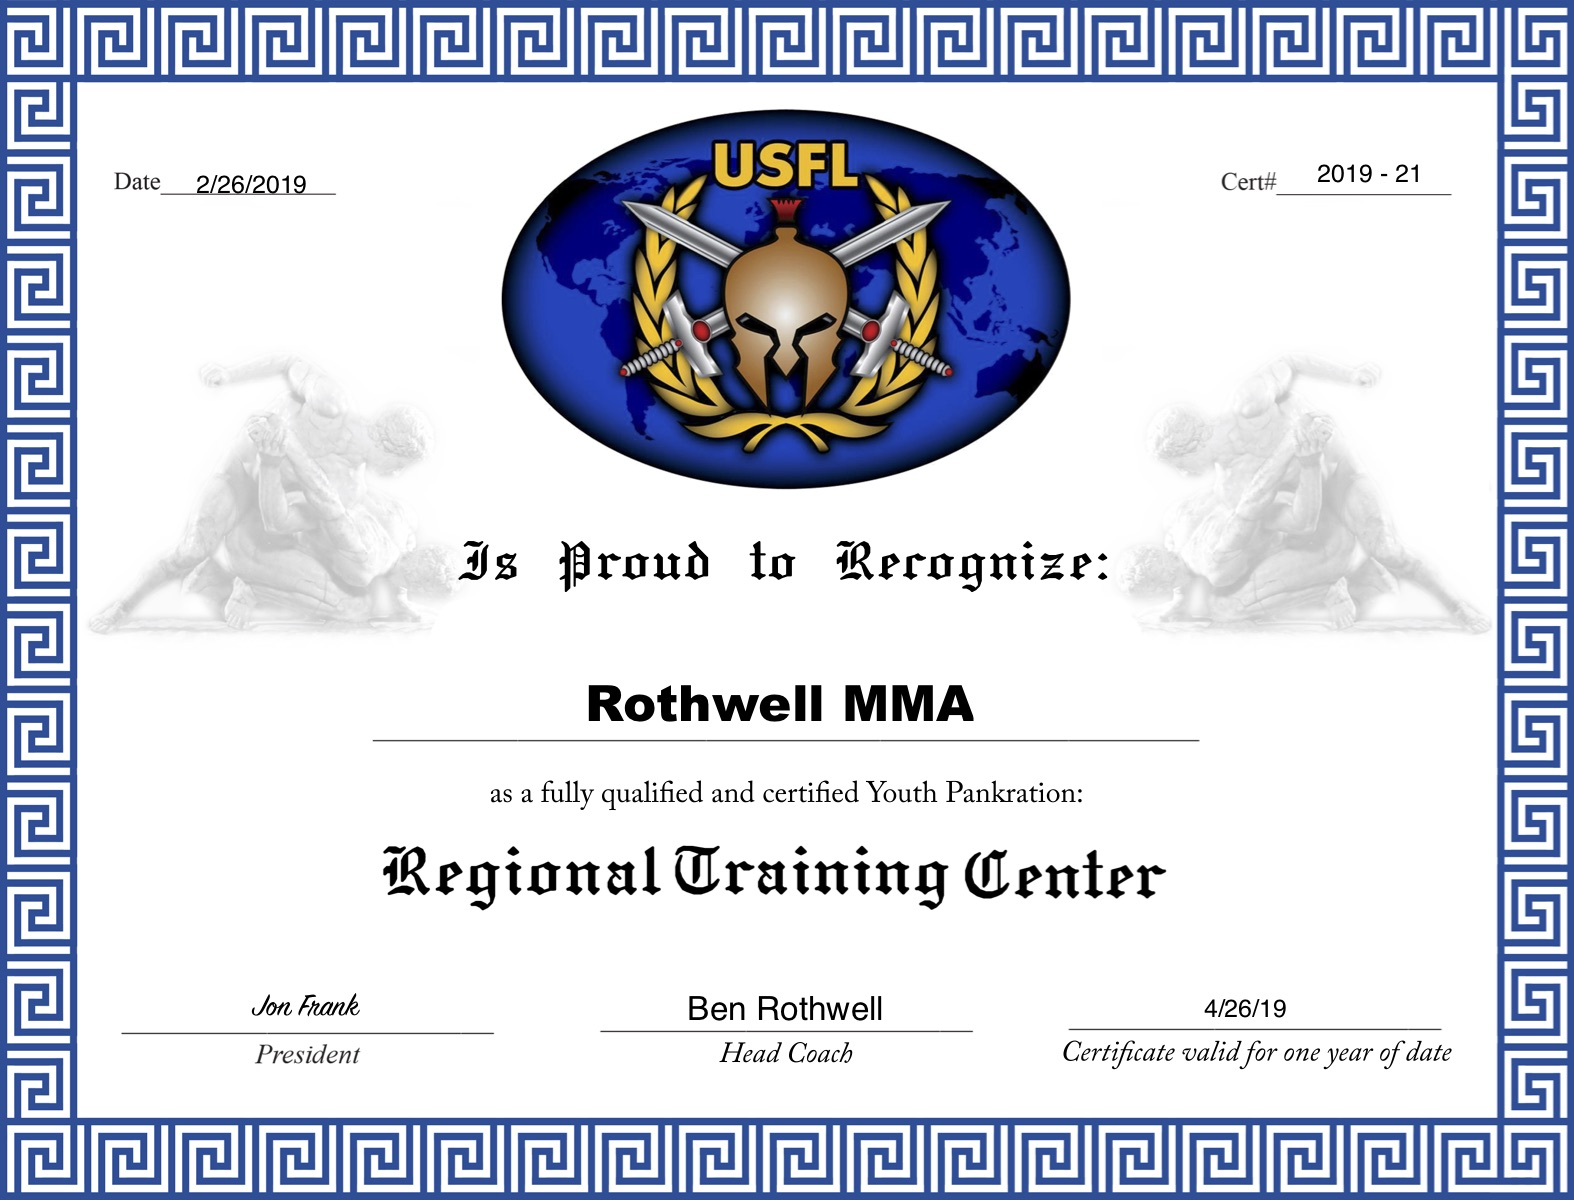 We are an official USFL Youth MMA Training Center